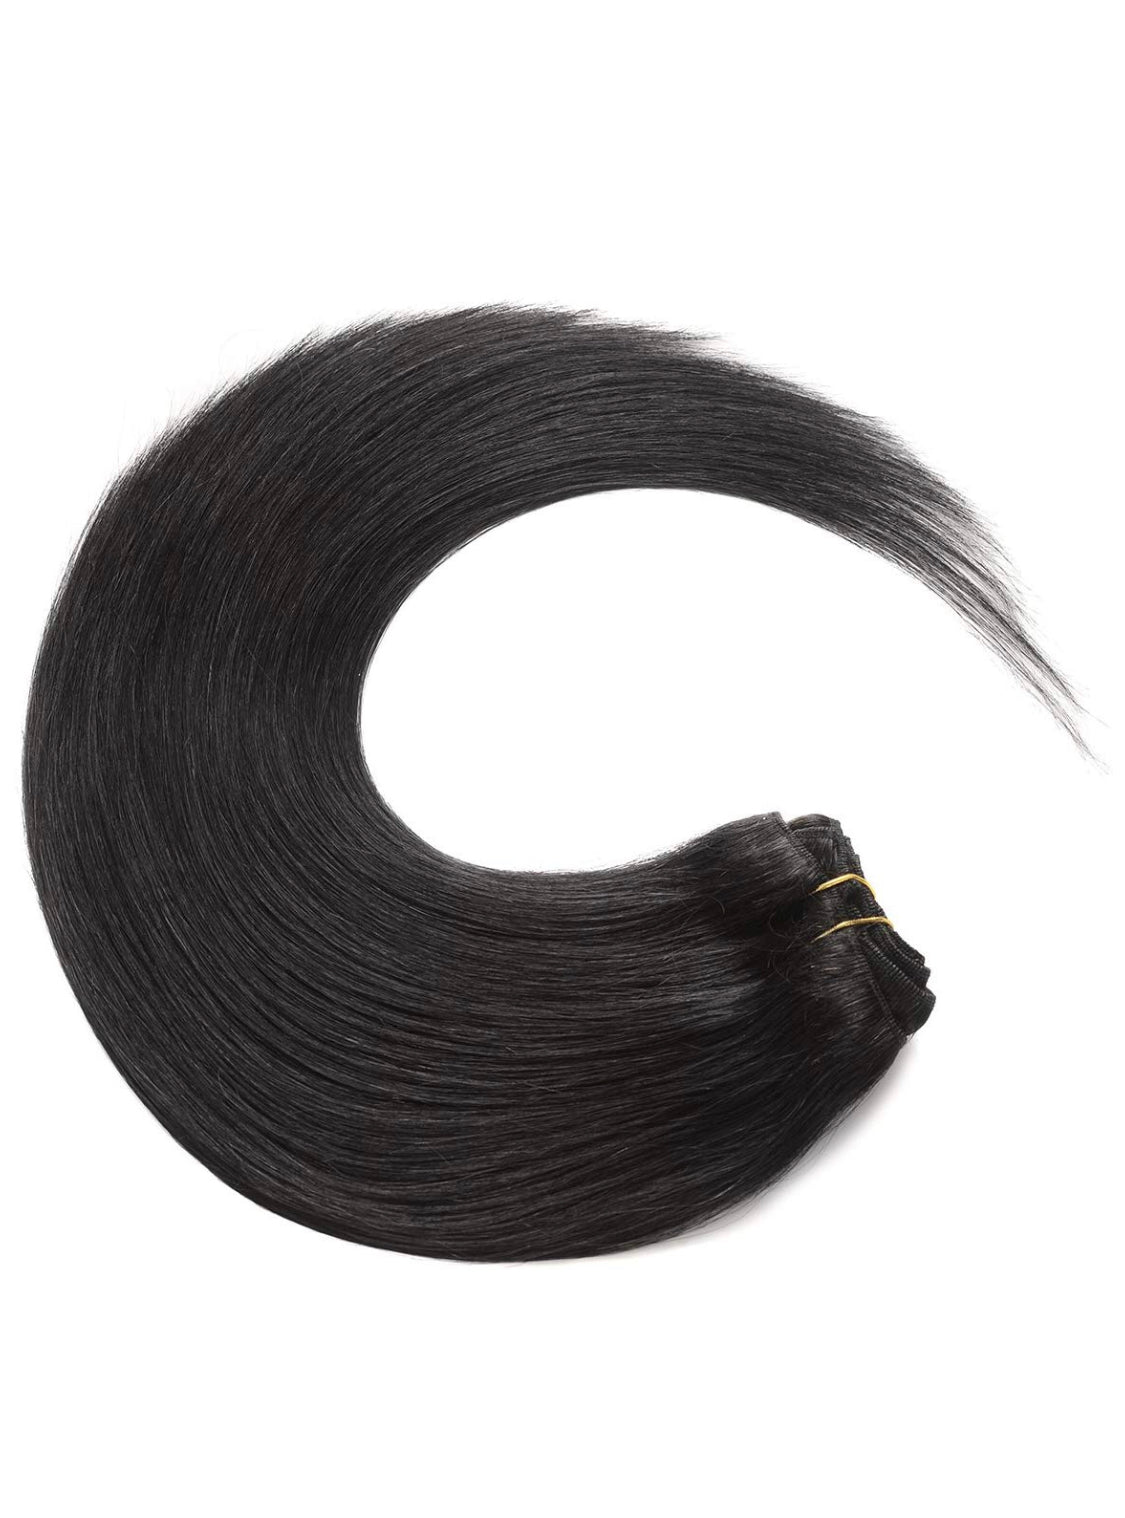 Black Clip In Hair Extensions